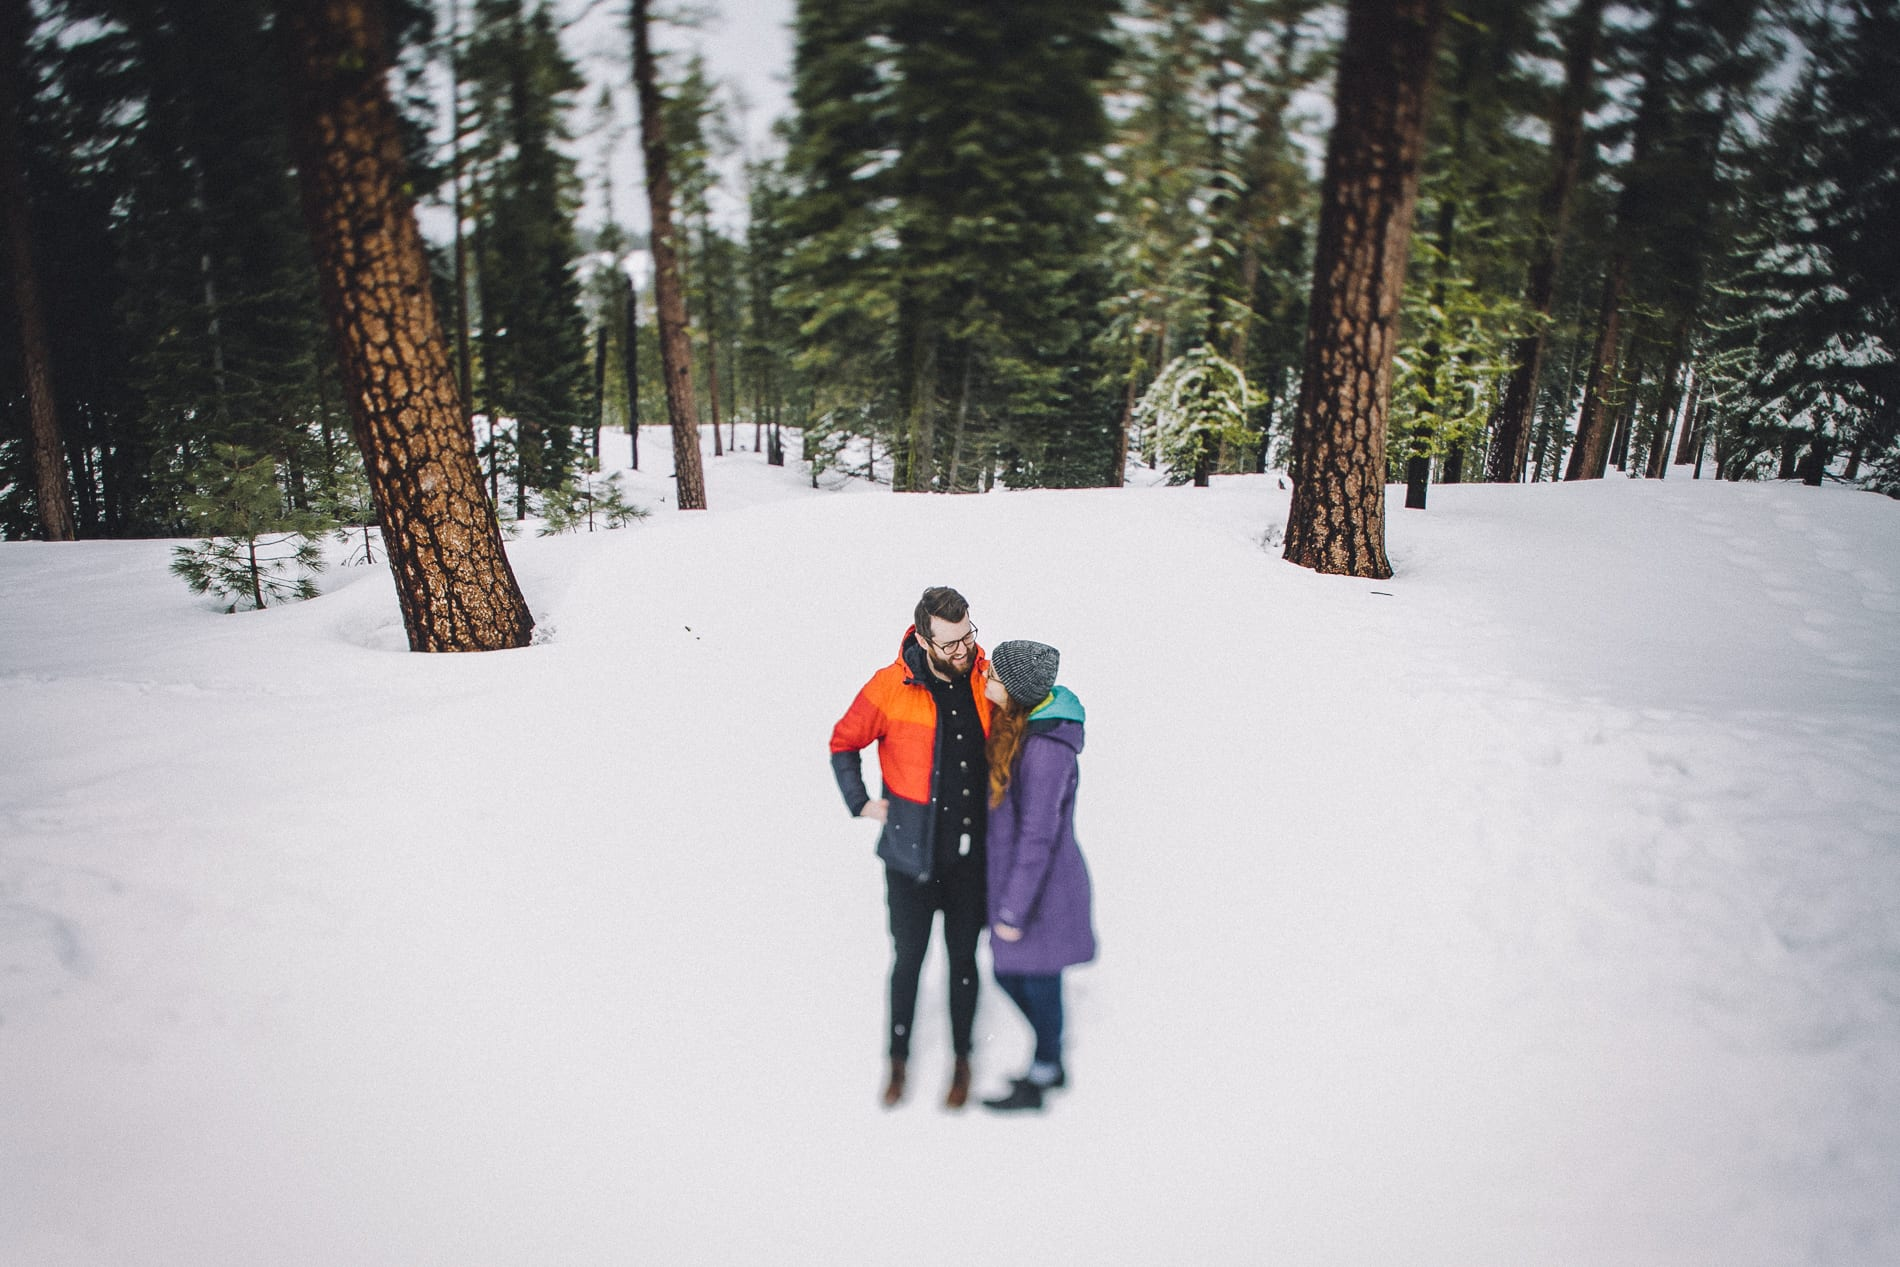 mount-lassen-adventures-lifestyle-portrait-photography-35